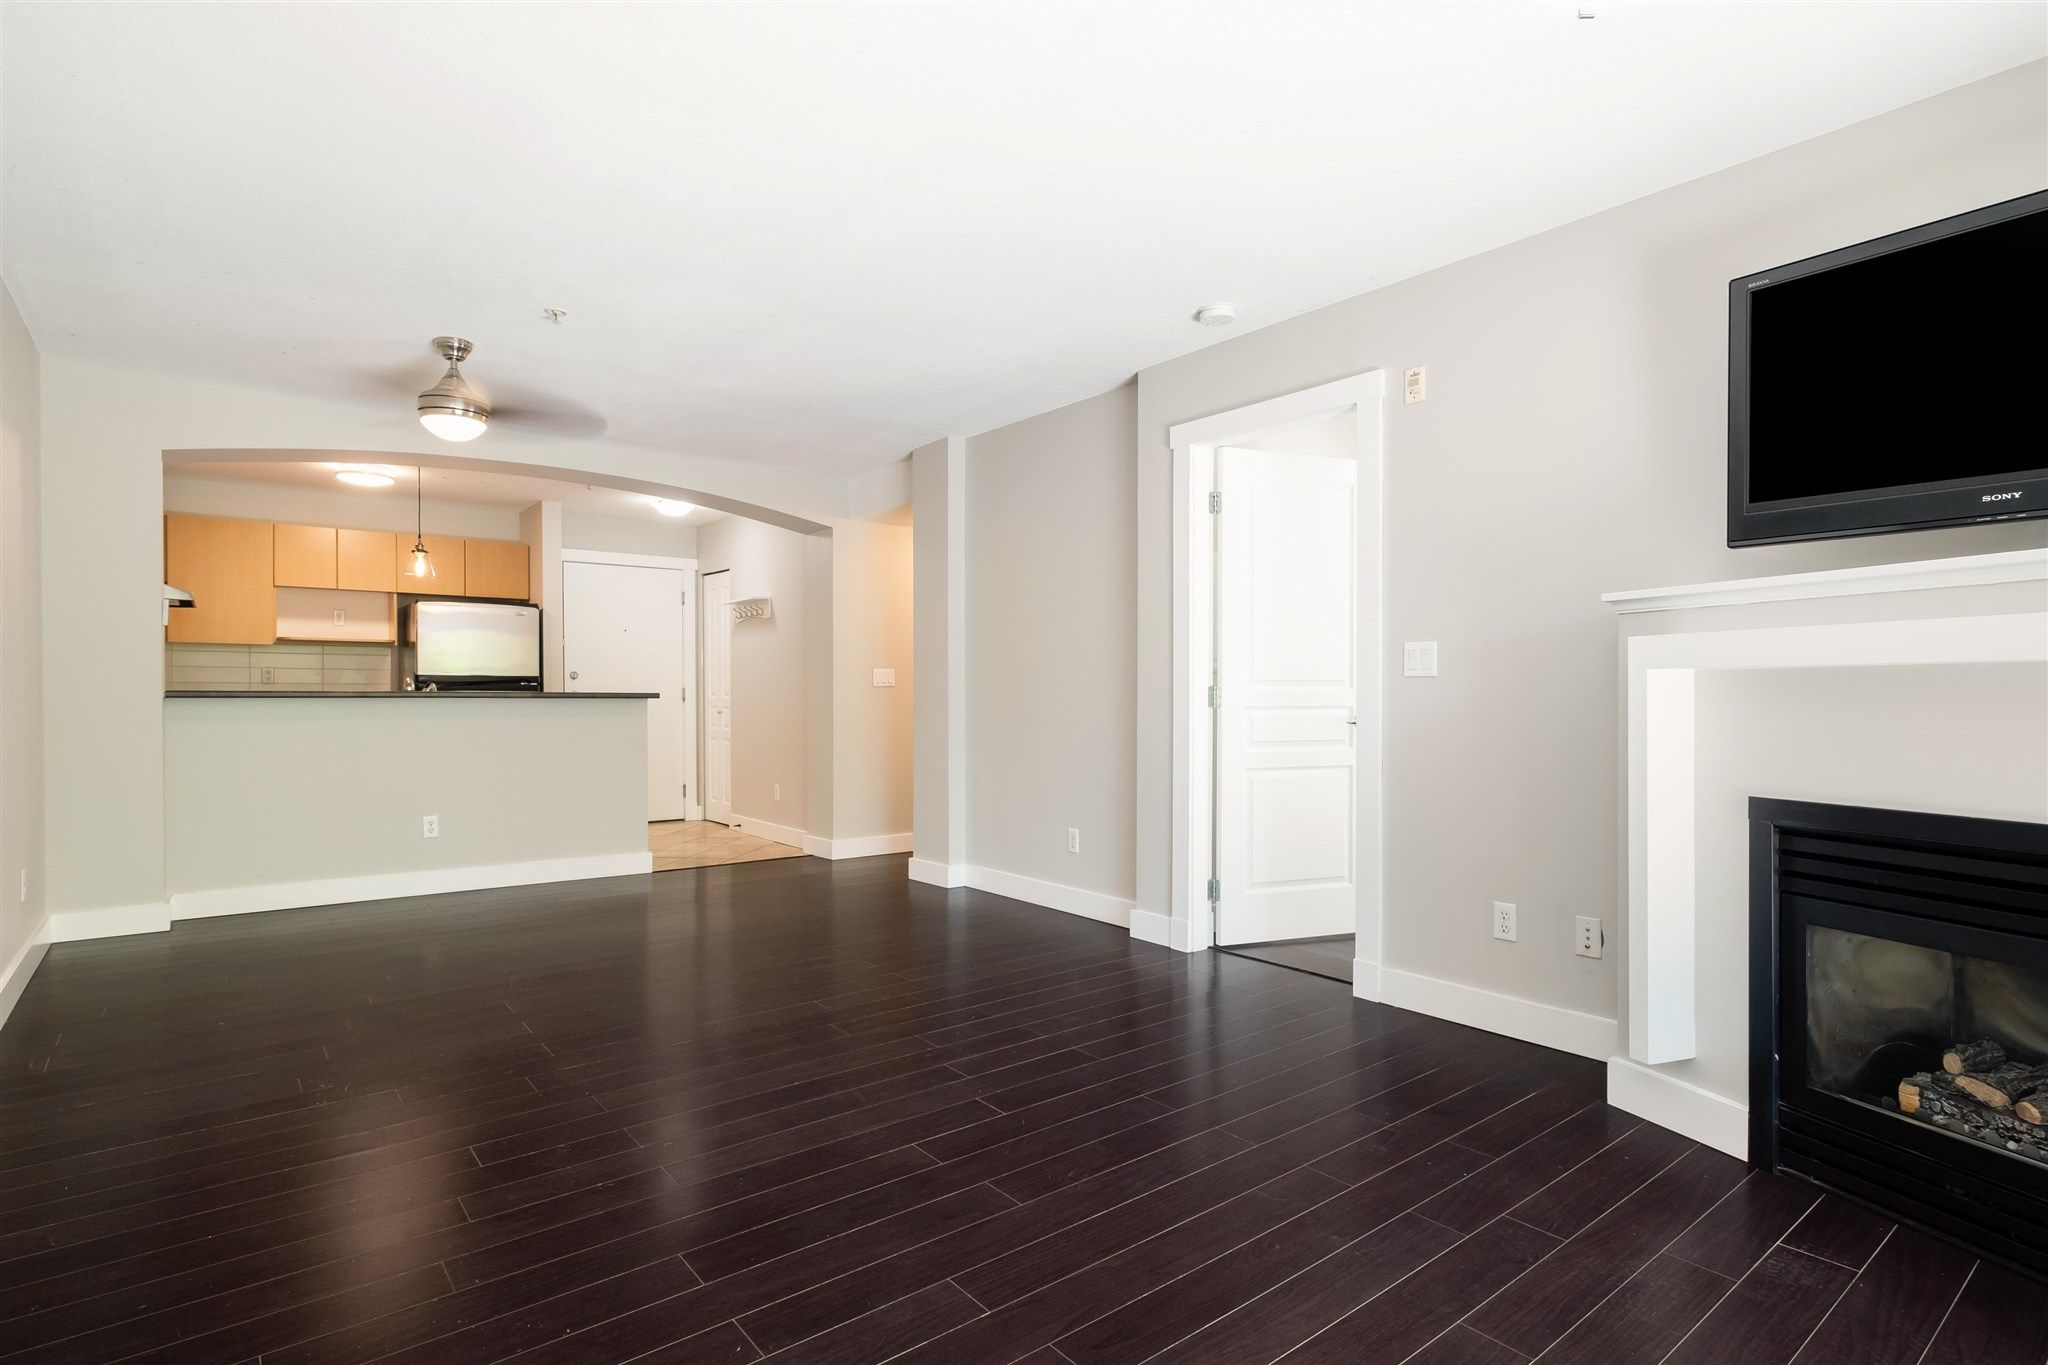 """Photo 5: Photos: 211 9339 UNIVERSITY Crescent in Burnaby: Simon Fraser Univer. Condo for sale in """"HARMONY"""" (Burnaby North)  : MLS®# R2597666"""